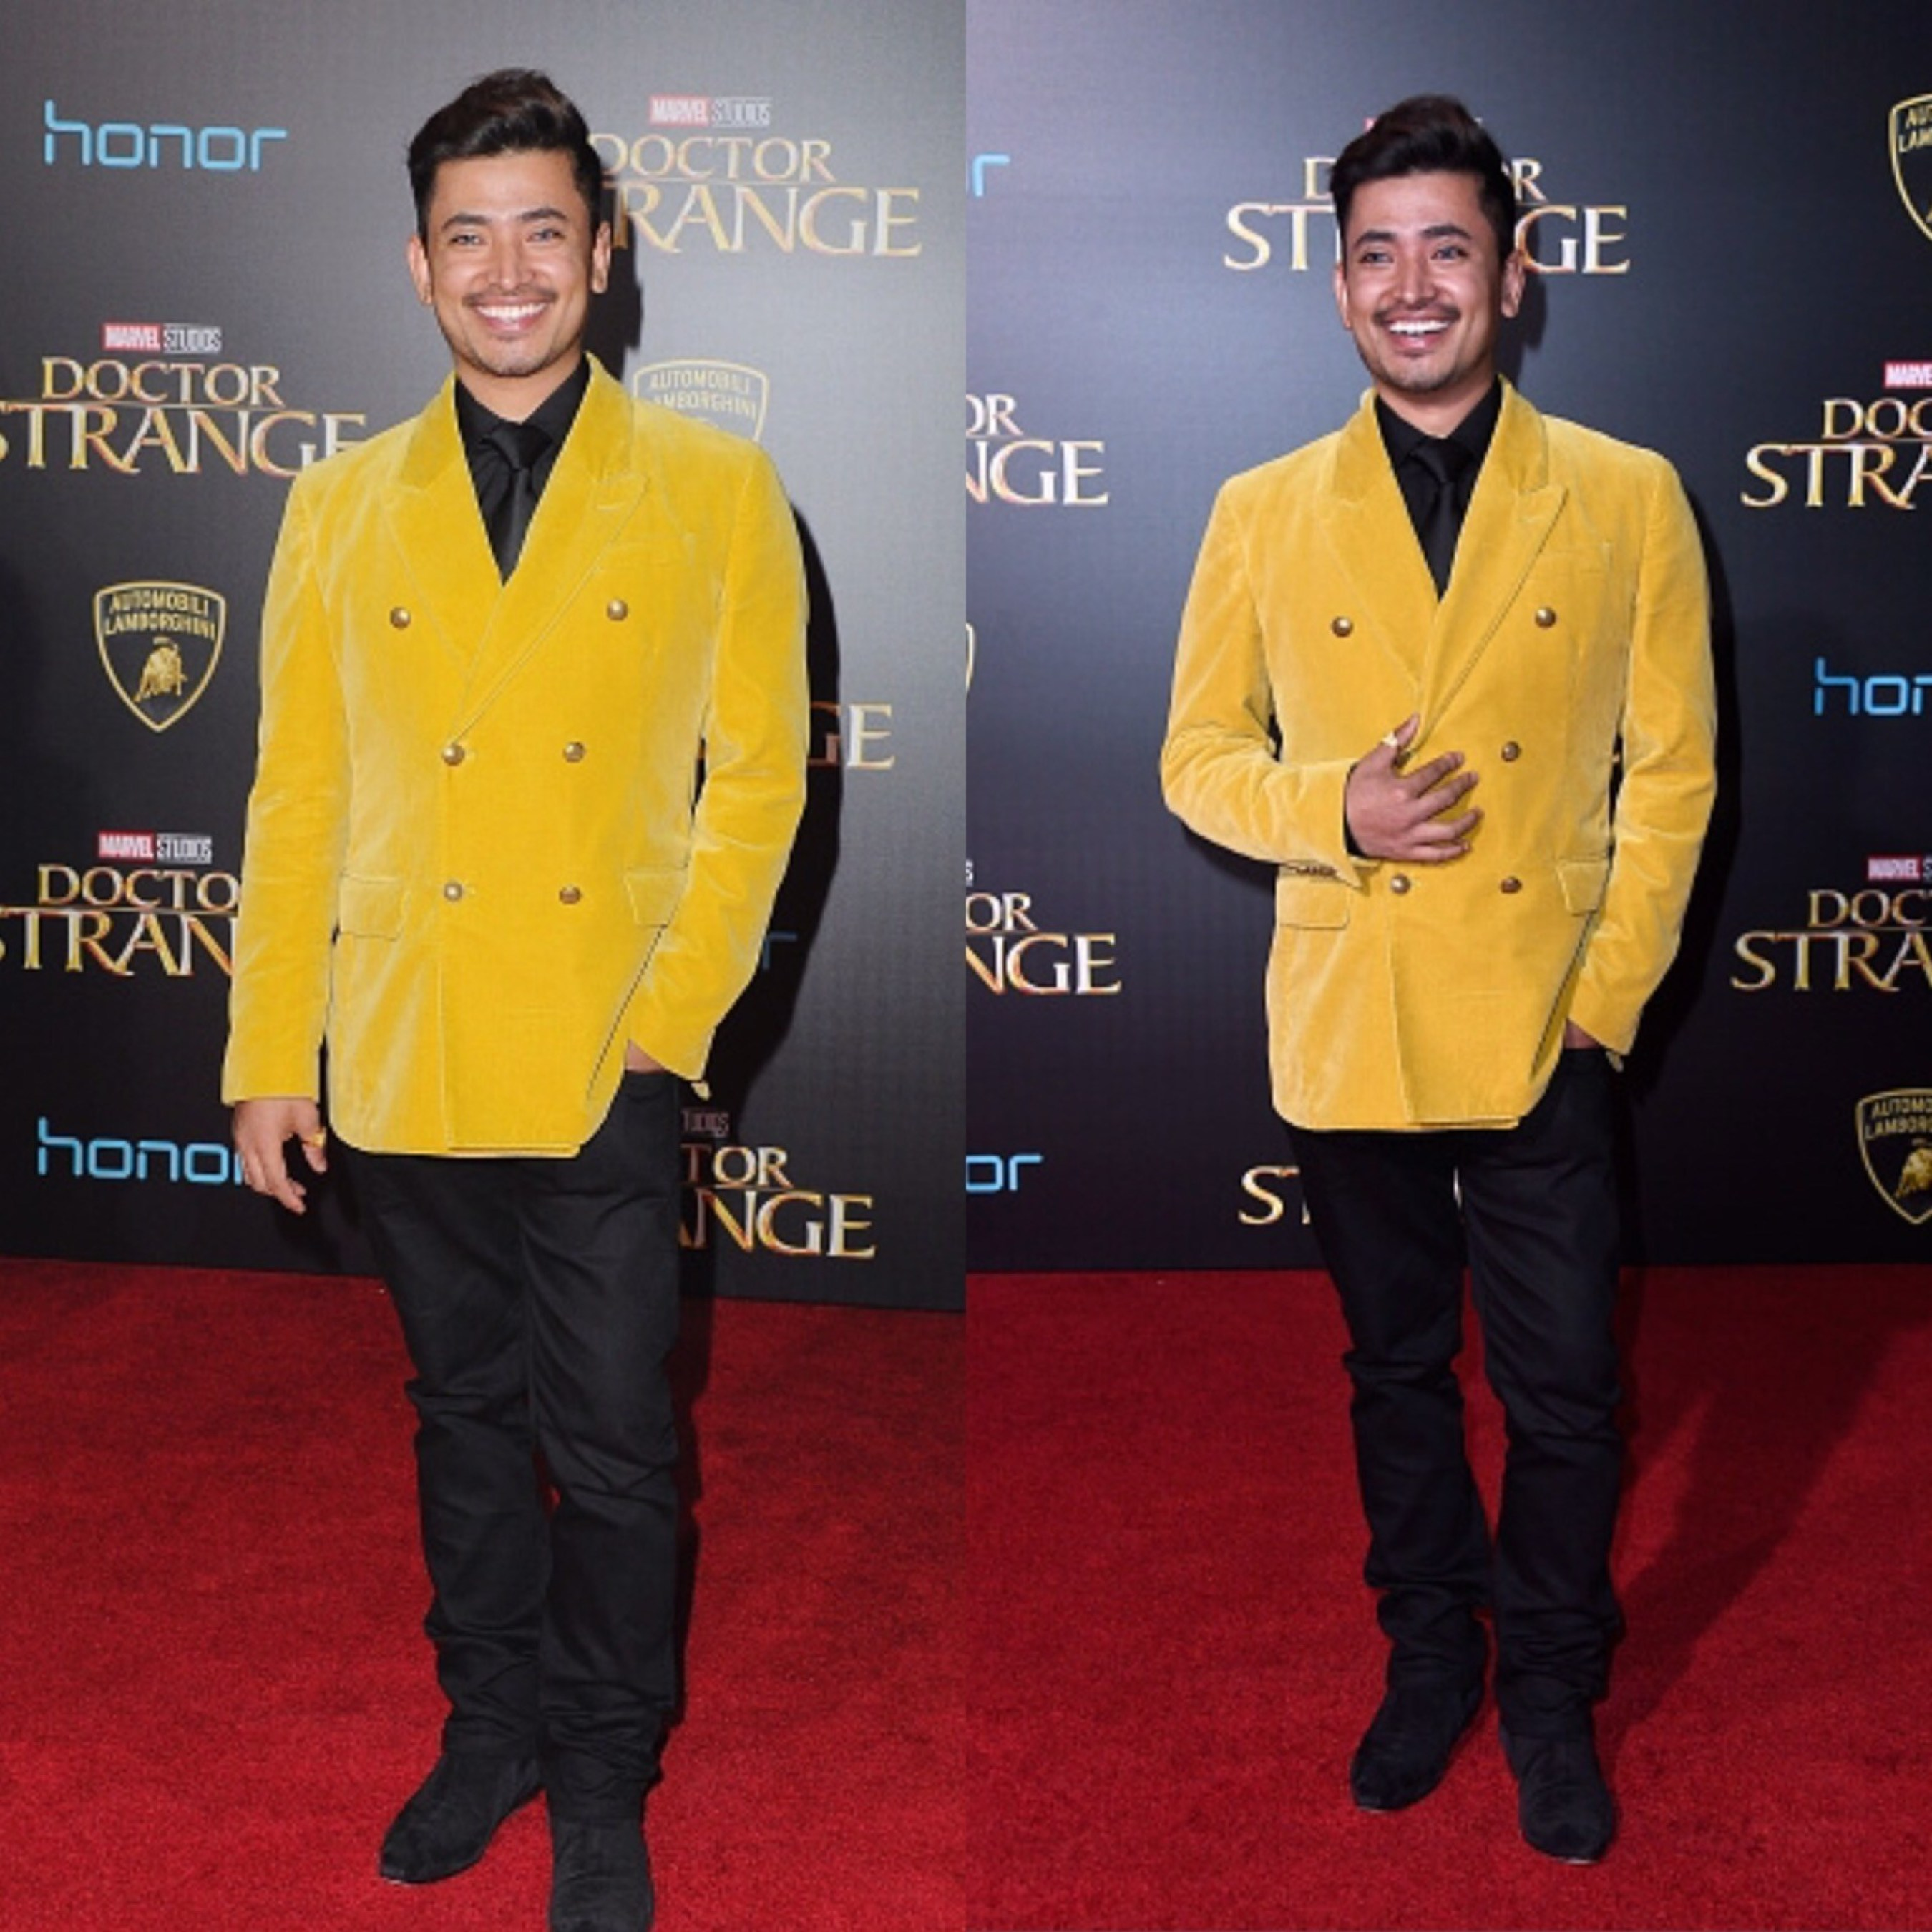 """Pritan Ambroase attends the world premiere of Marvel Studios' """"Doctor Strange"""" at the El Capitan Theatre in Los Angeles on October 20, 2016."""